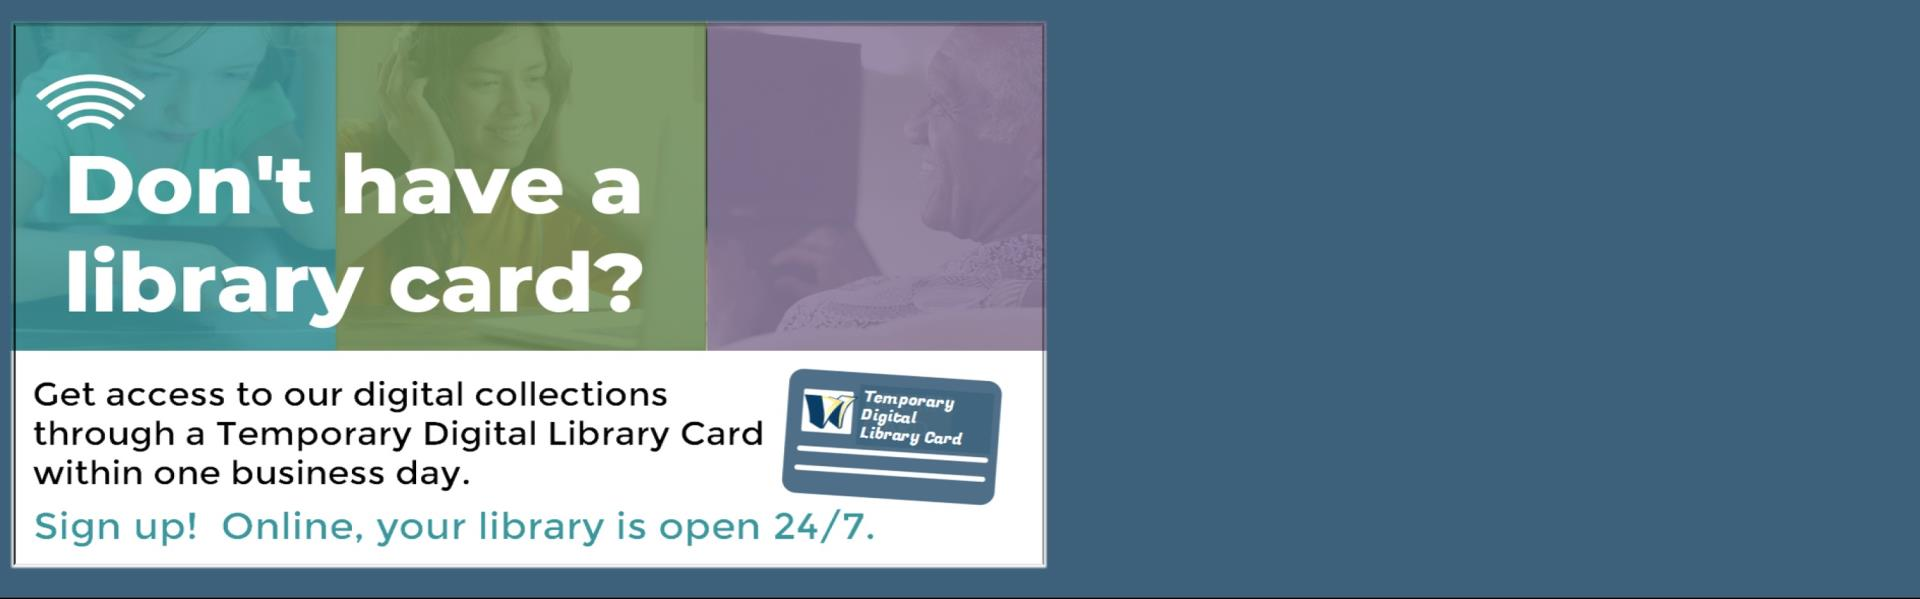 Don't have a library card/ Get access to our digital collection image of a library card